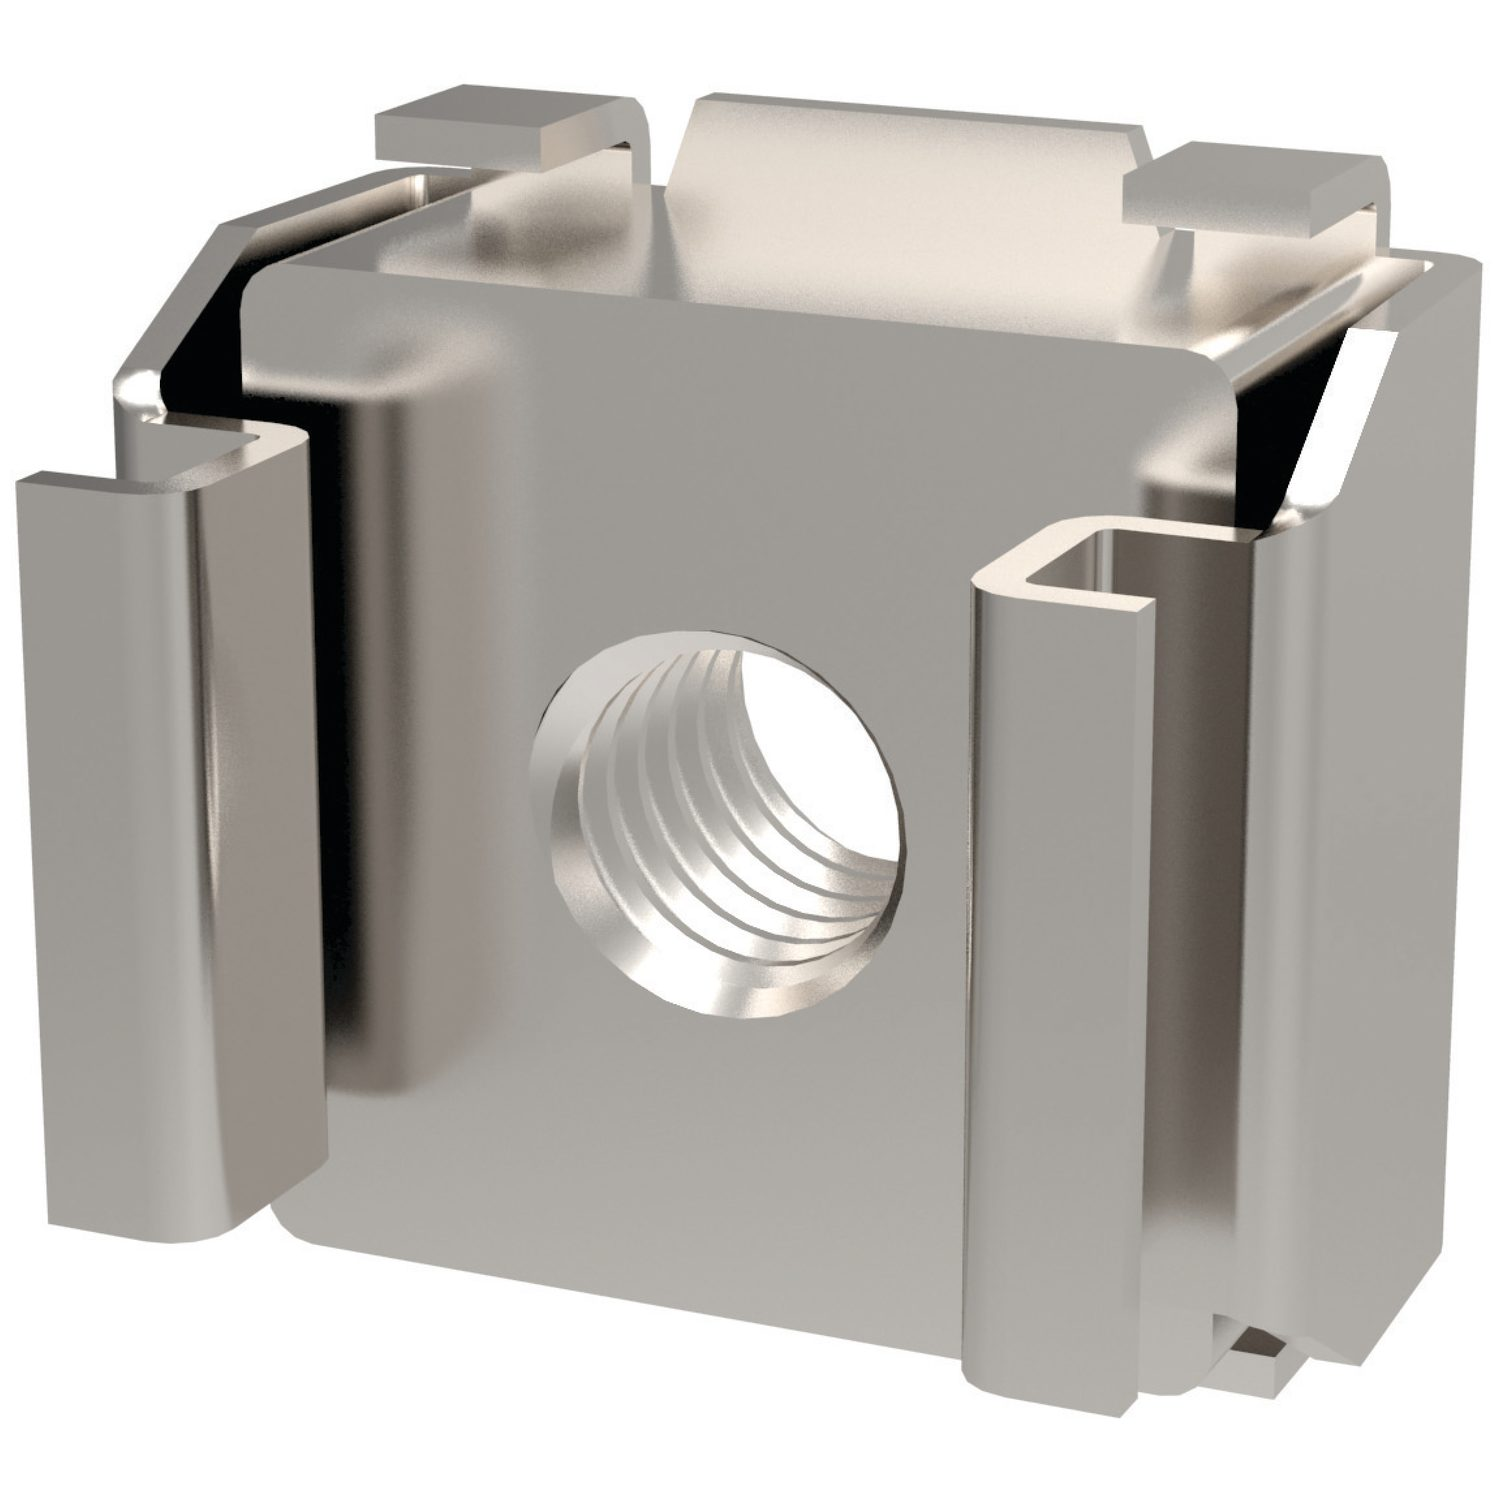 Cage Nuts Cage nuts manufactured in A2 stainless steel. Sizes range from M4 to M10. For panels up to 4,3.